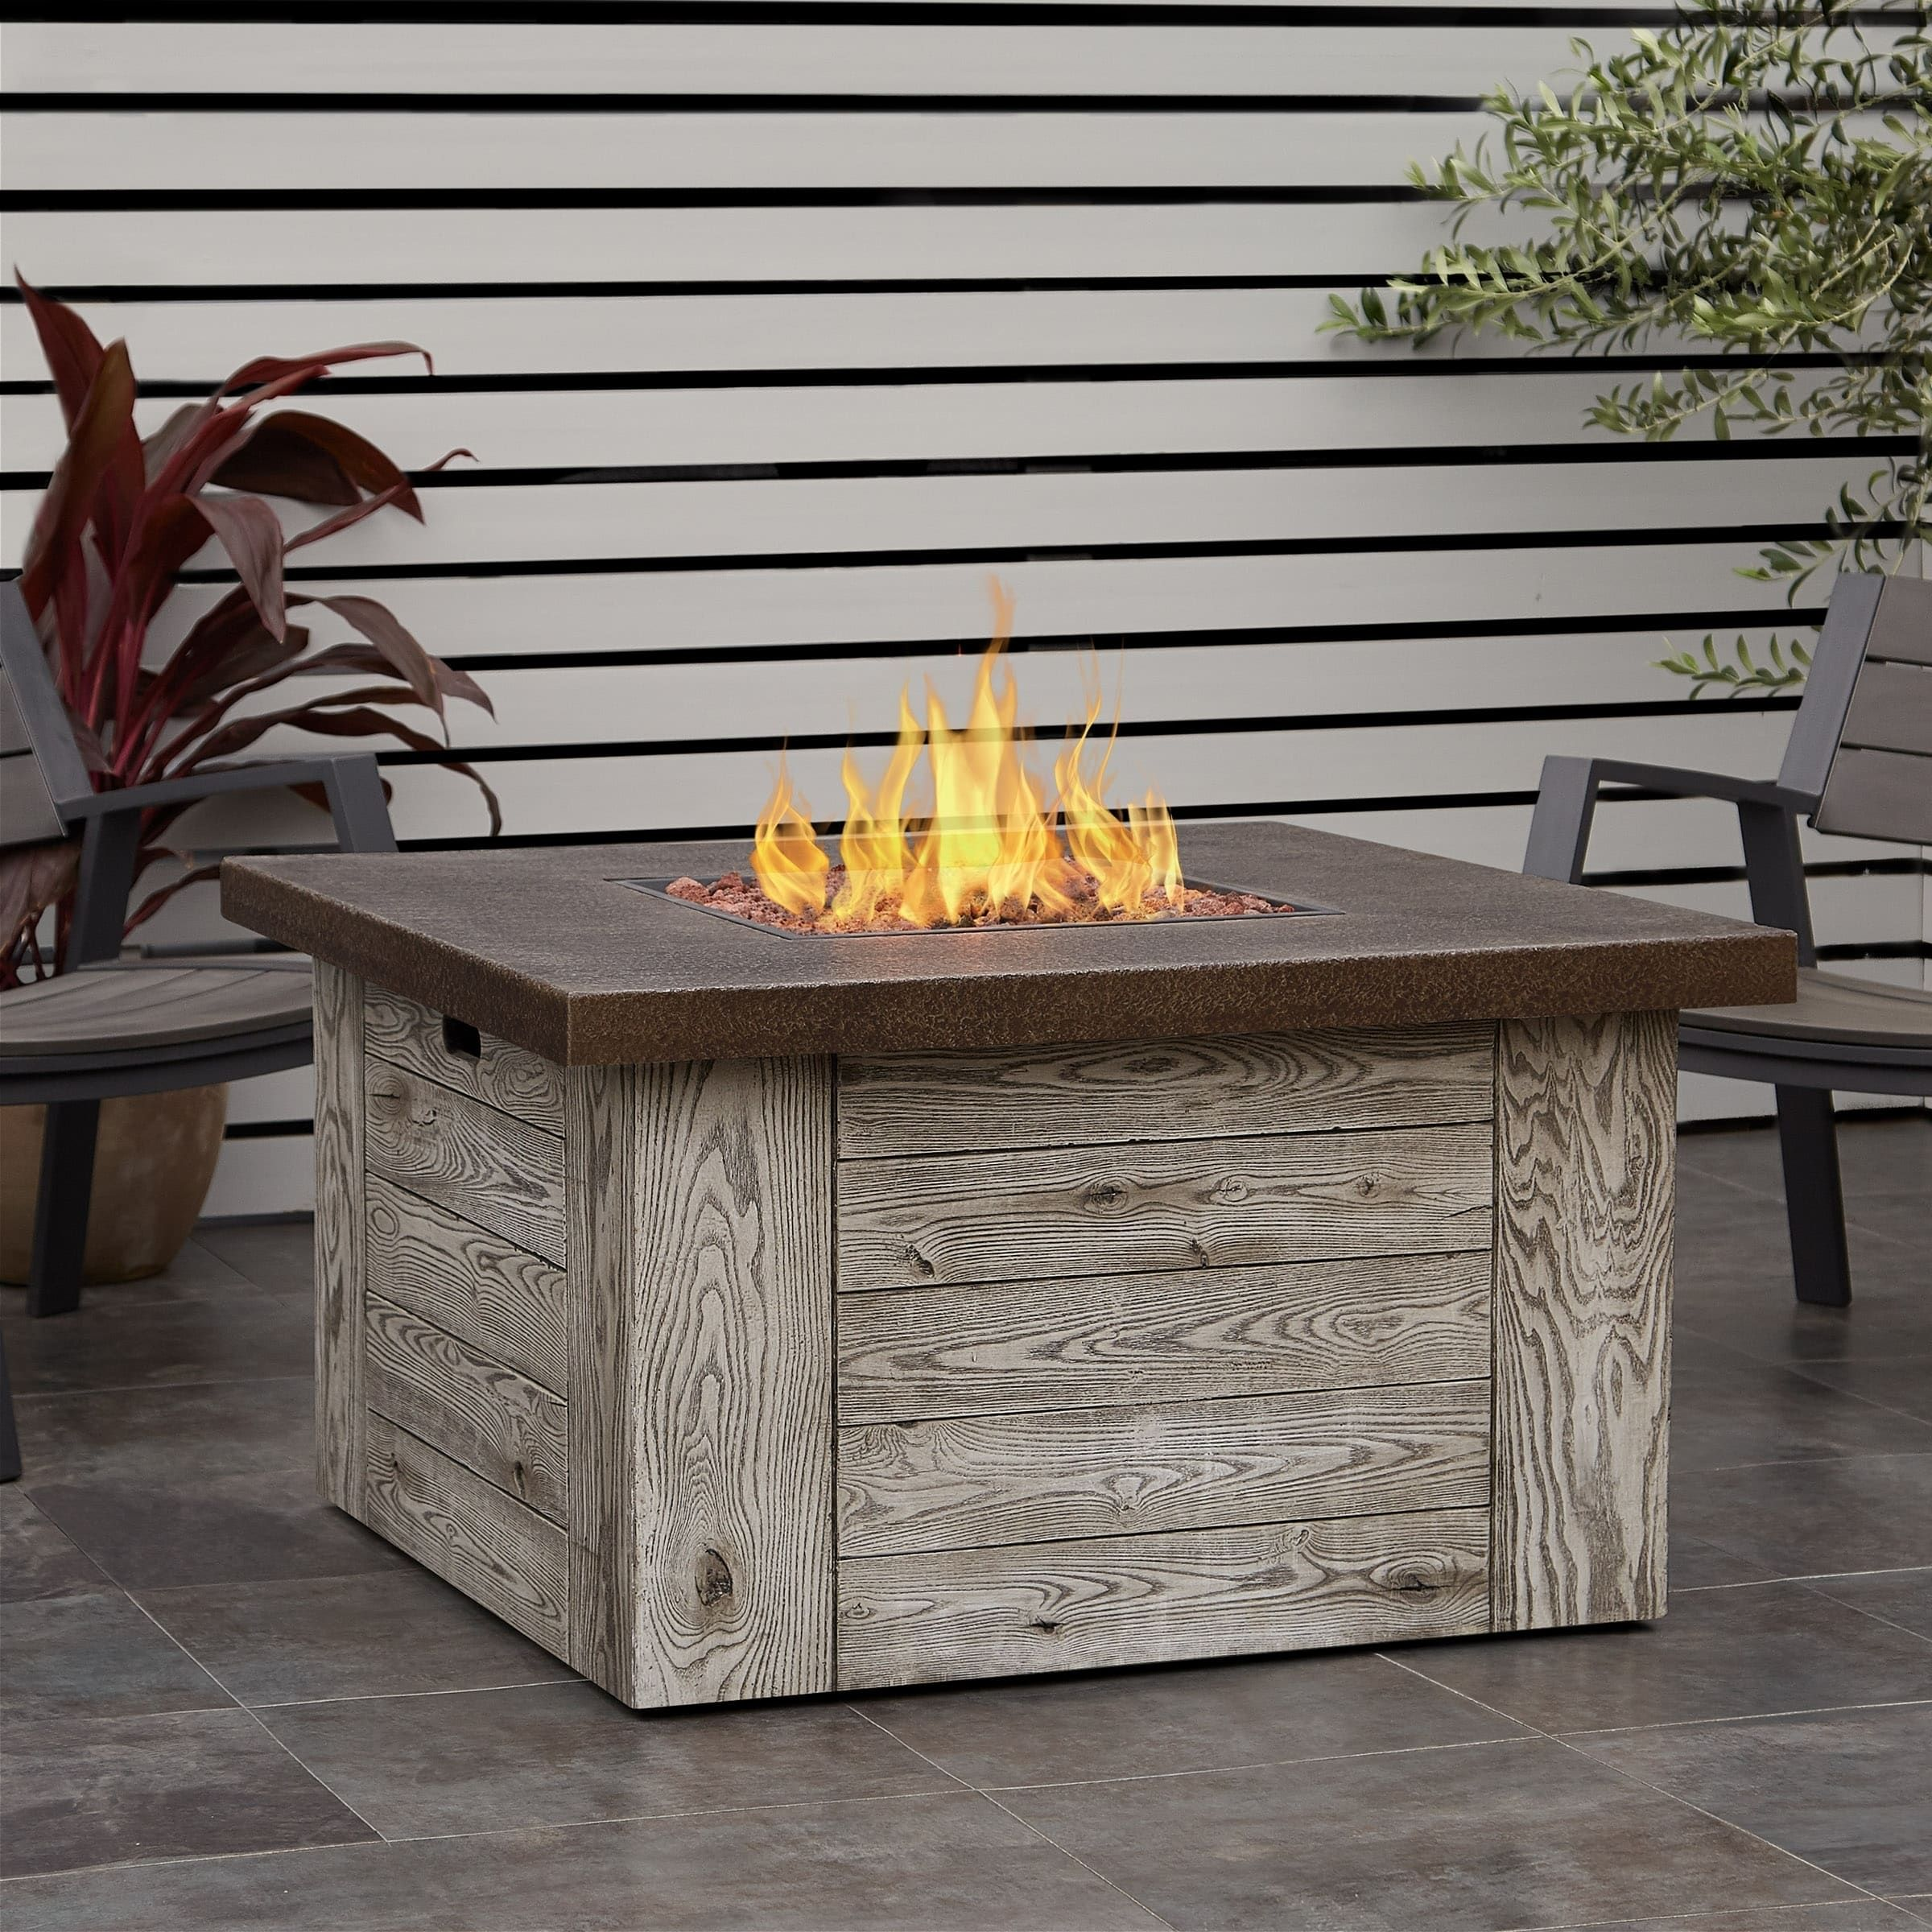 Real flame forest ridge grey concrete gas fire table outdoor décor